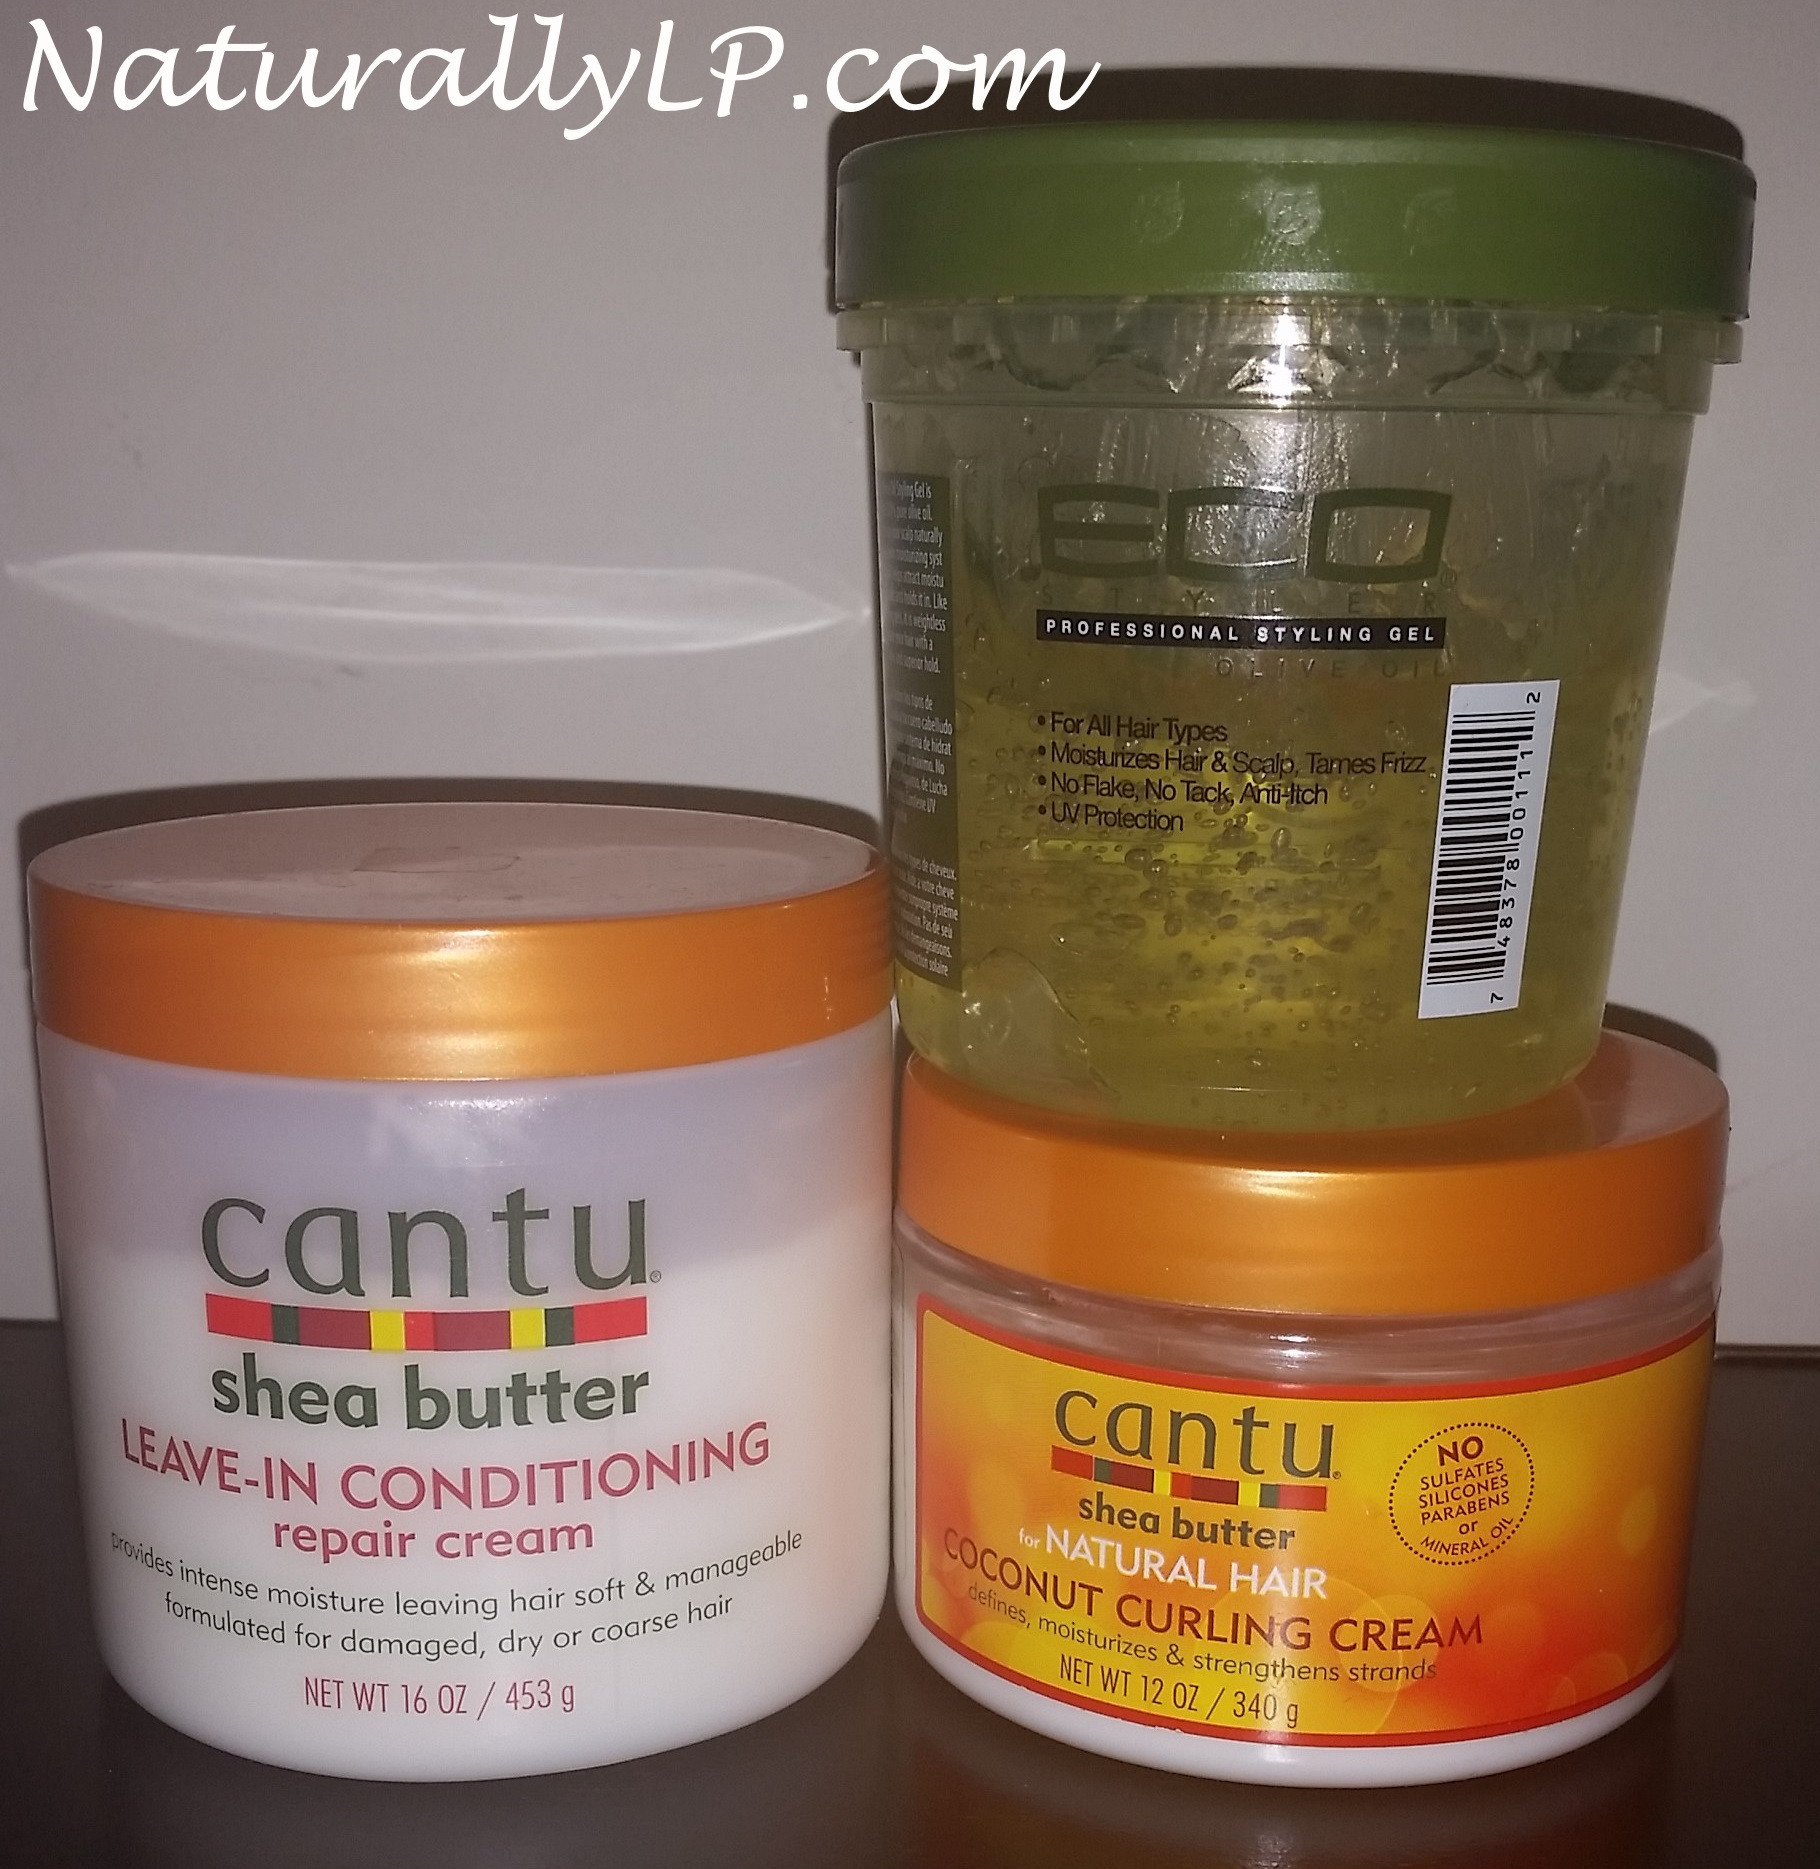 Twist Out Results Using Cantu Shea Butter Naturally Lp